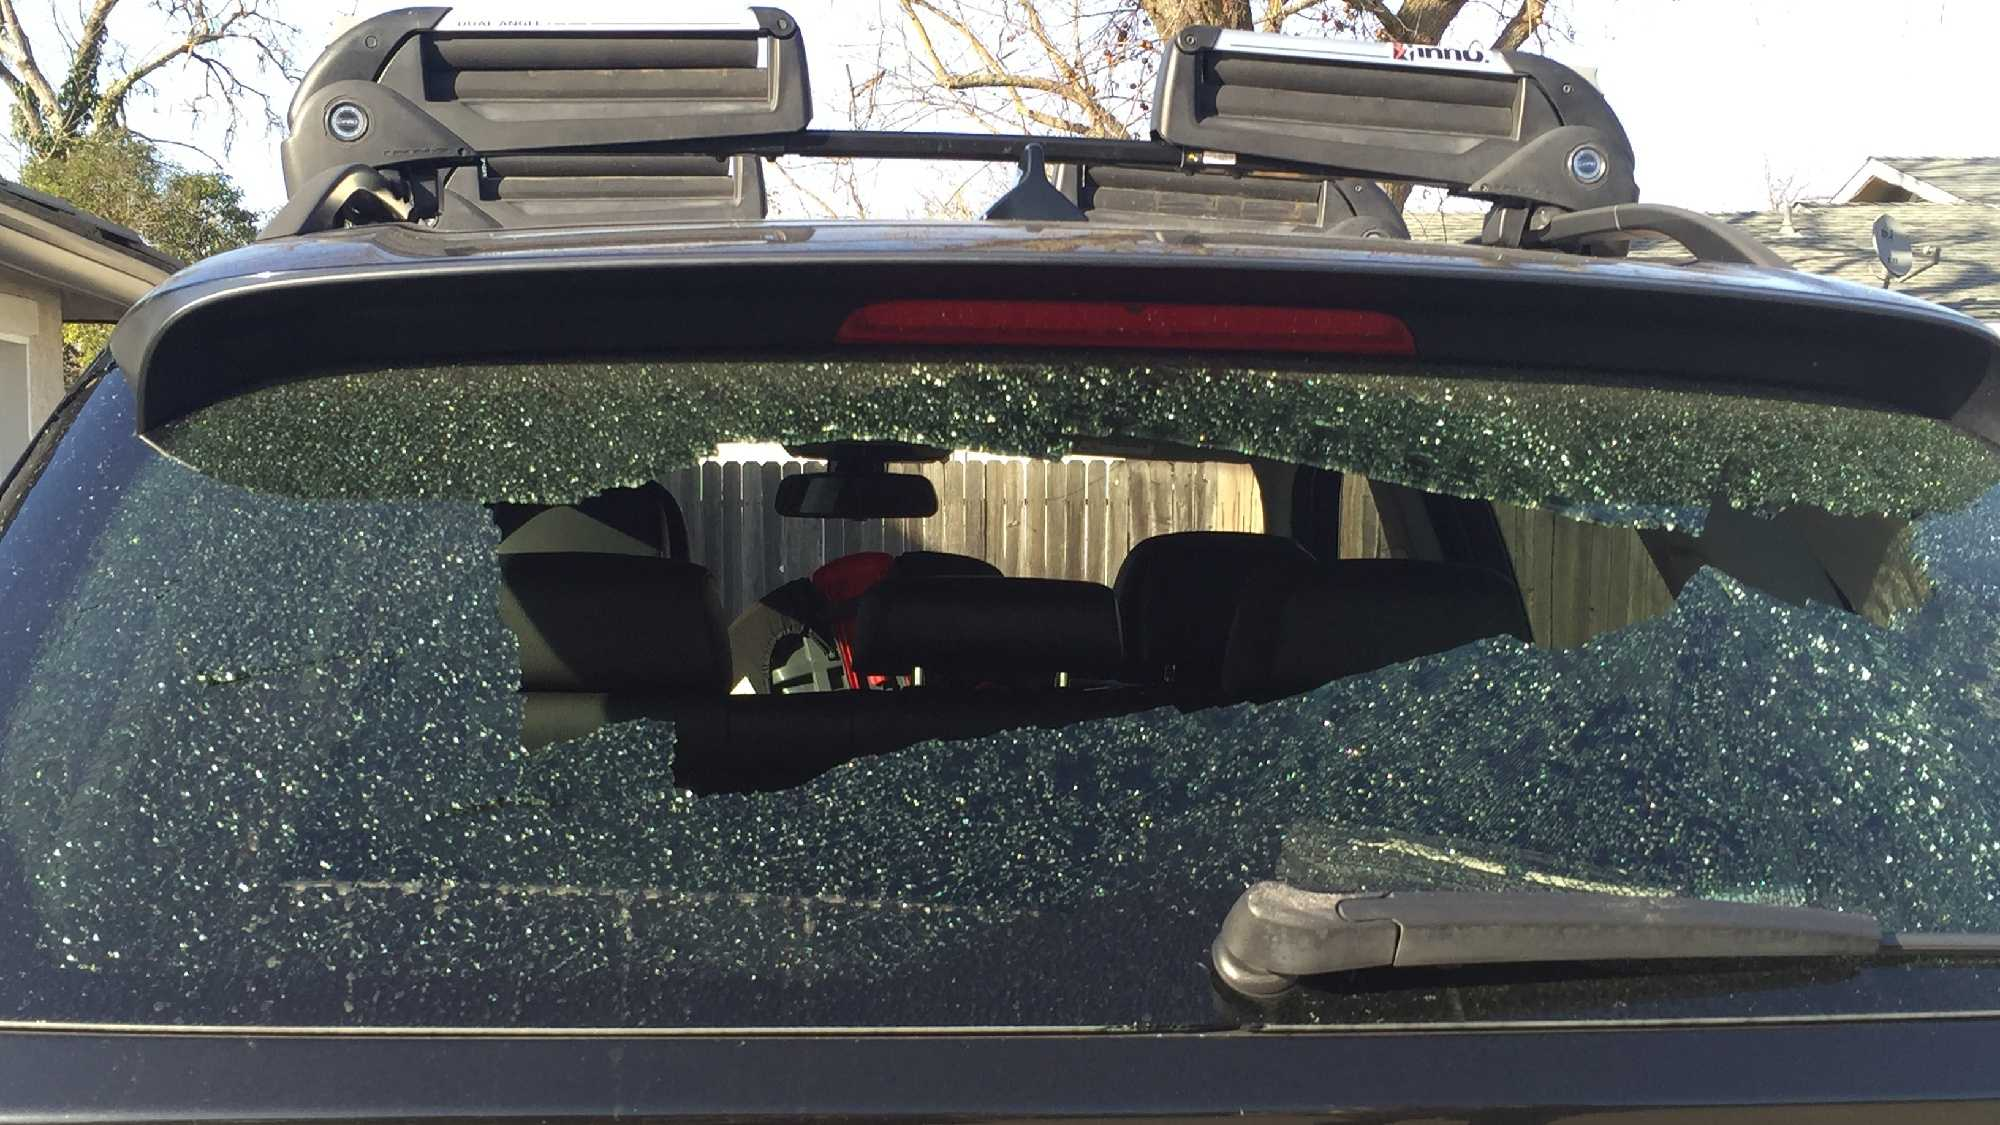 The back of Tamara Rose's SUV was shattered by a mystery object on Tuesday, Feb. 23, 2016, while driving children home from school.